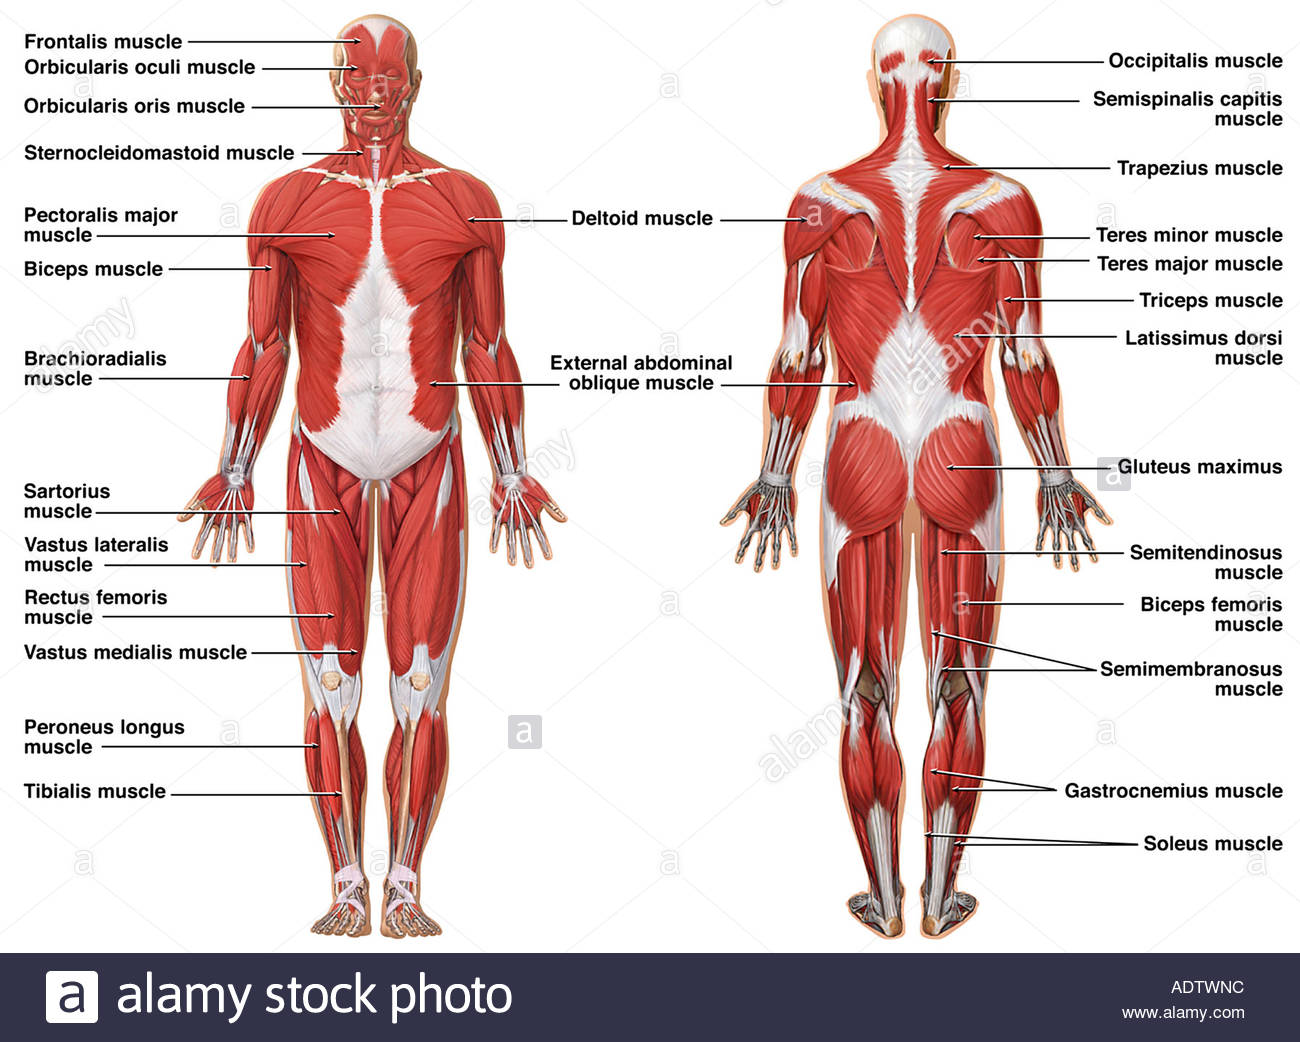 hight resolution of 1300x1042 anatomy of the muscular system stock photo 7710491